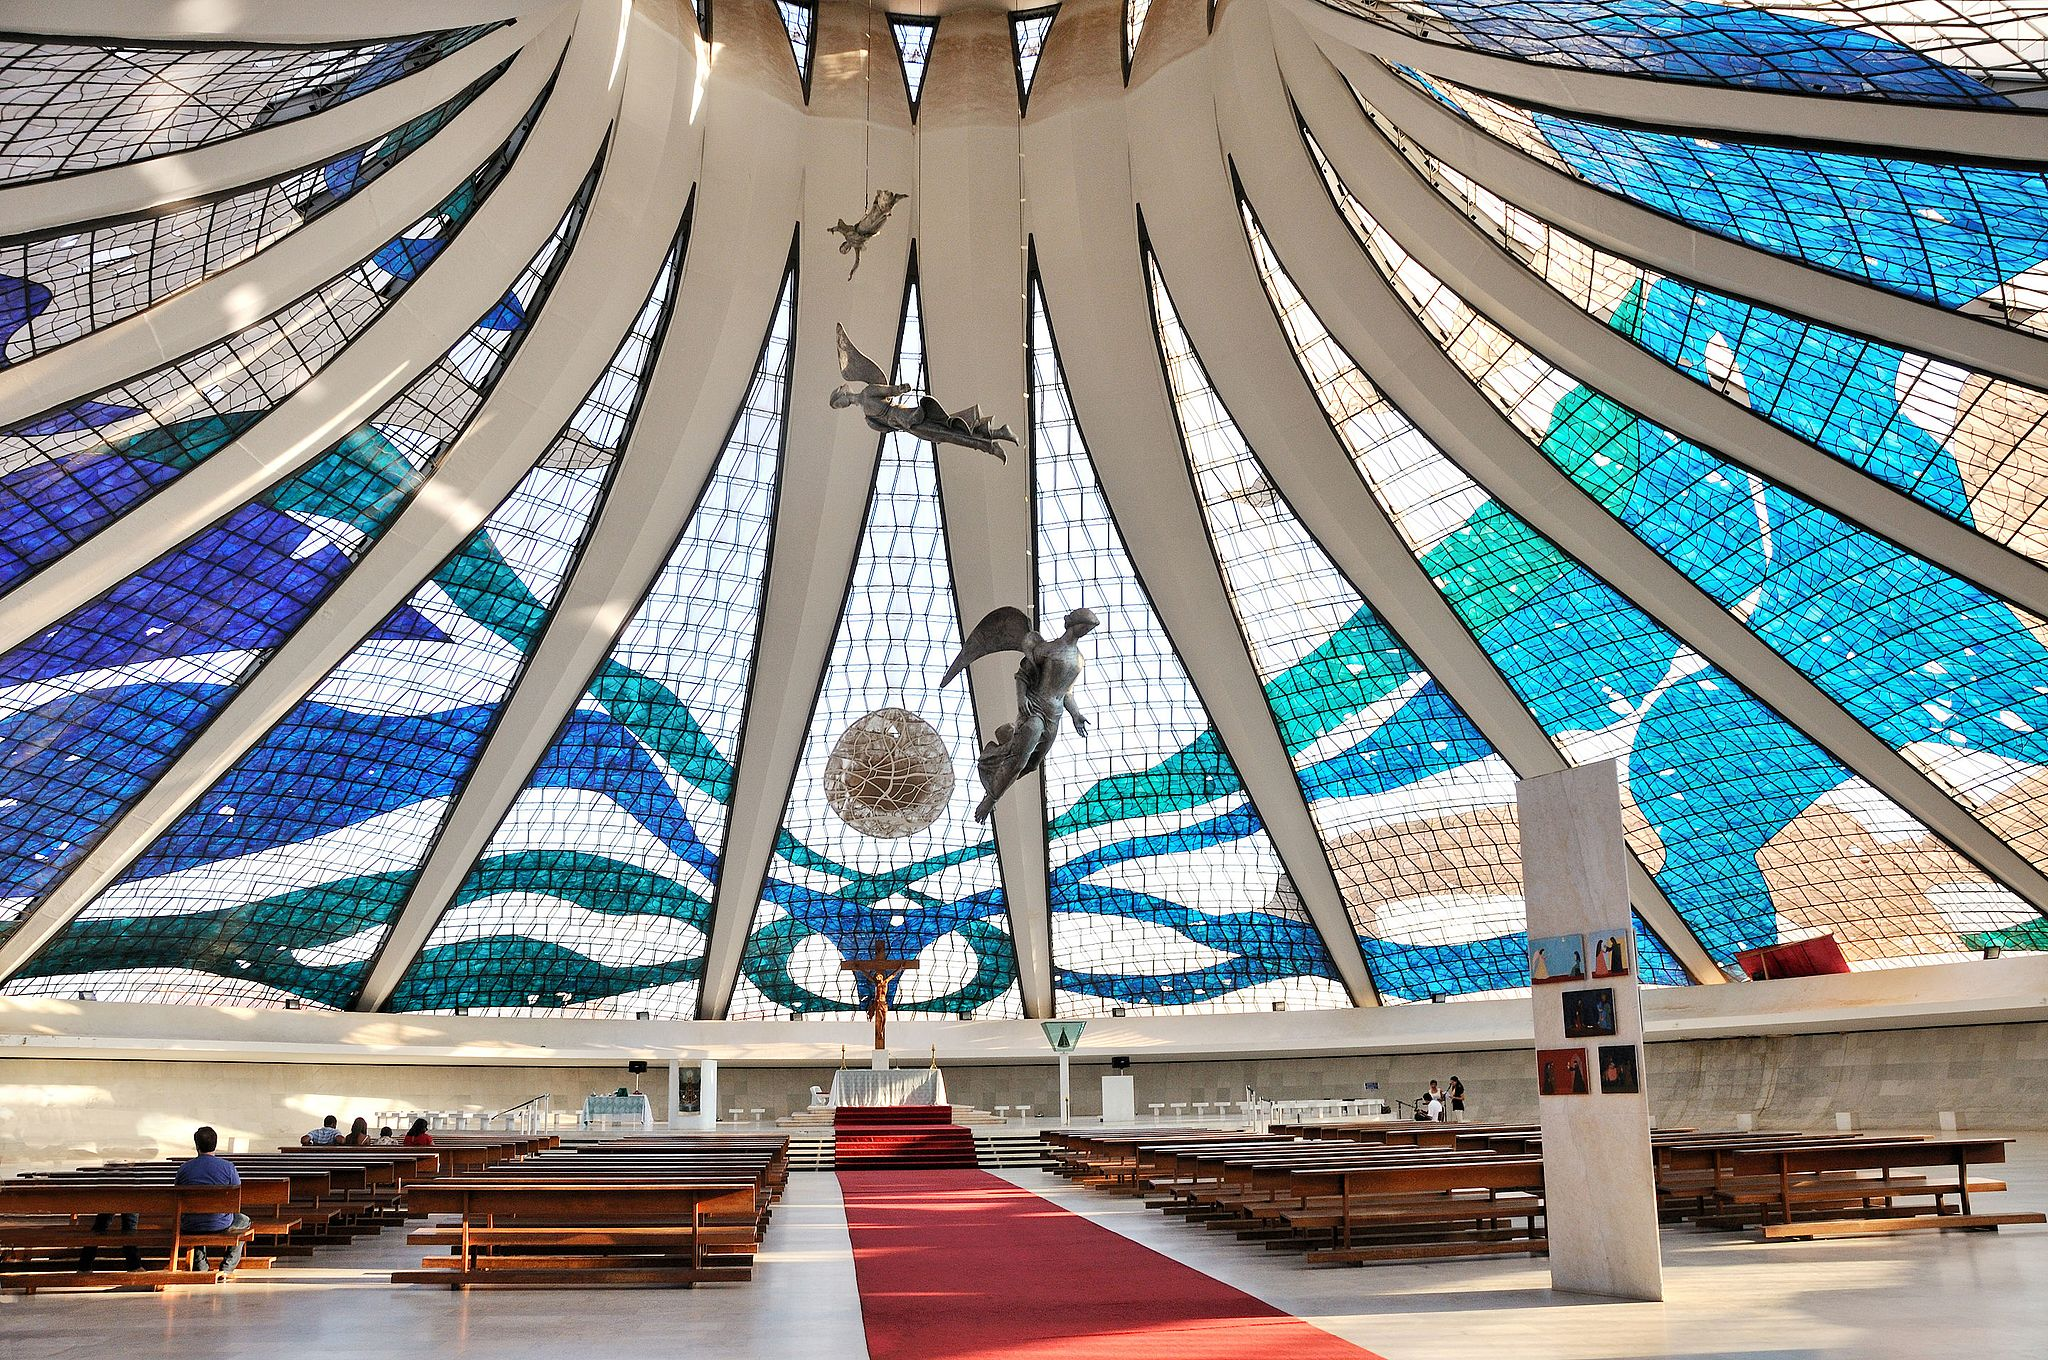 Cathedral of Brasilia by Cayambe (CC)